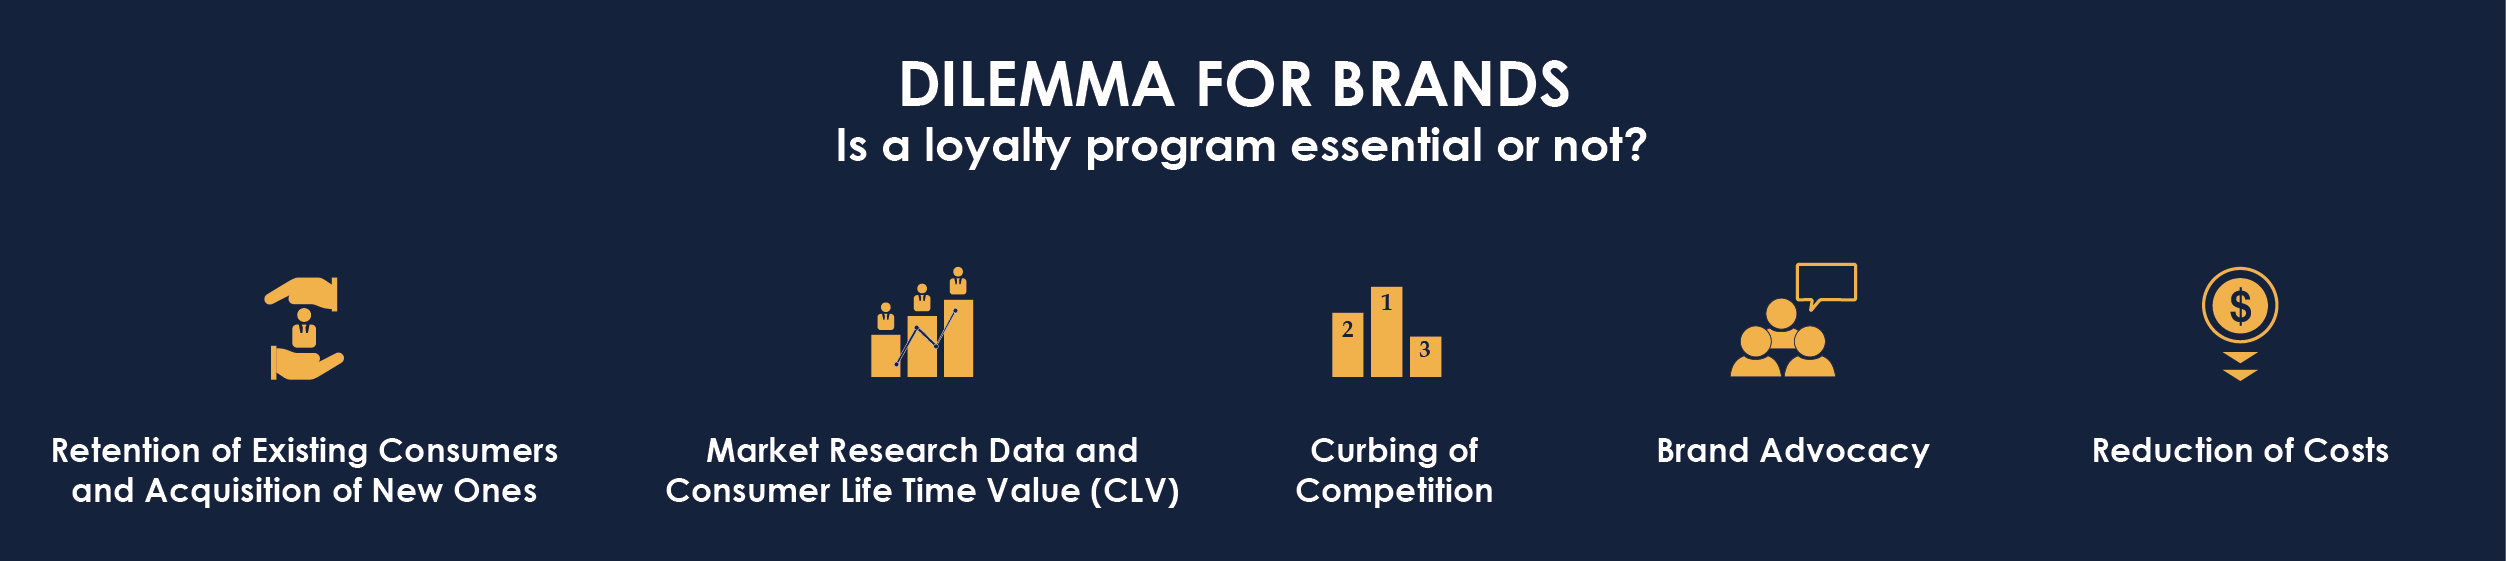 DILEMMA FOR BRANDS: Is a Loyalty Program Essential or Not?